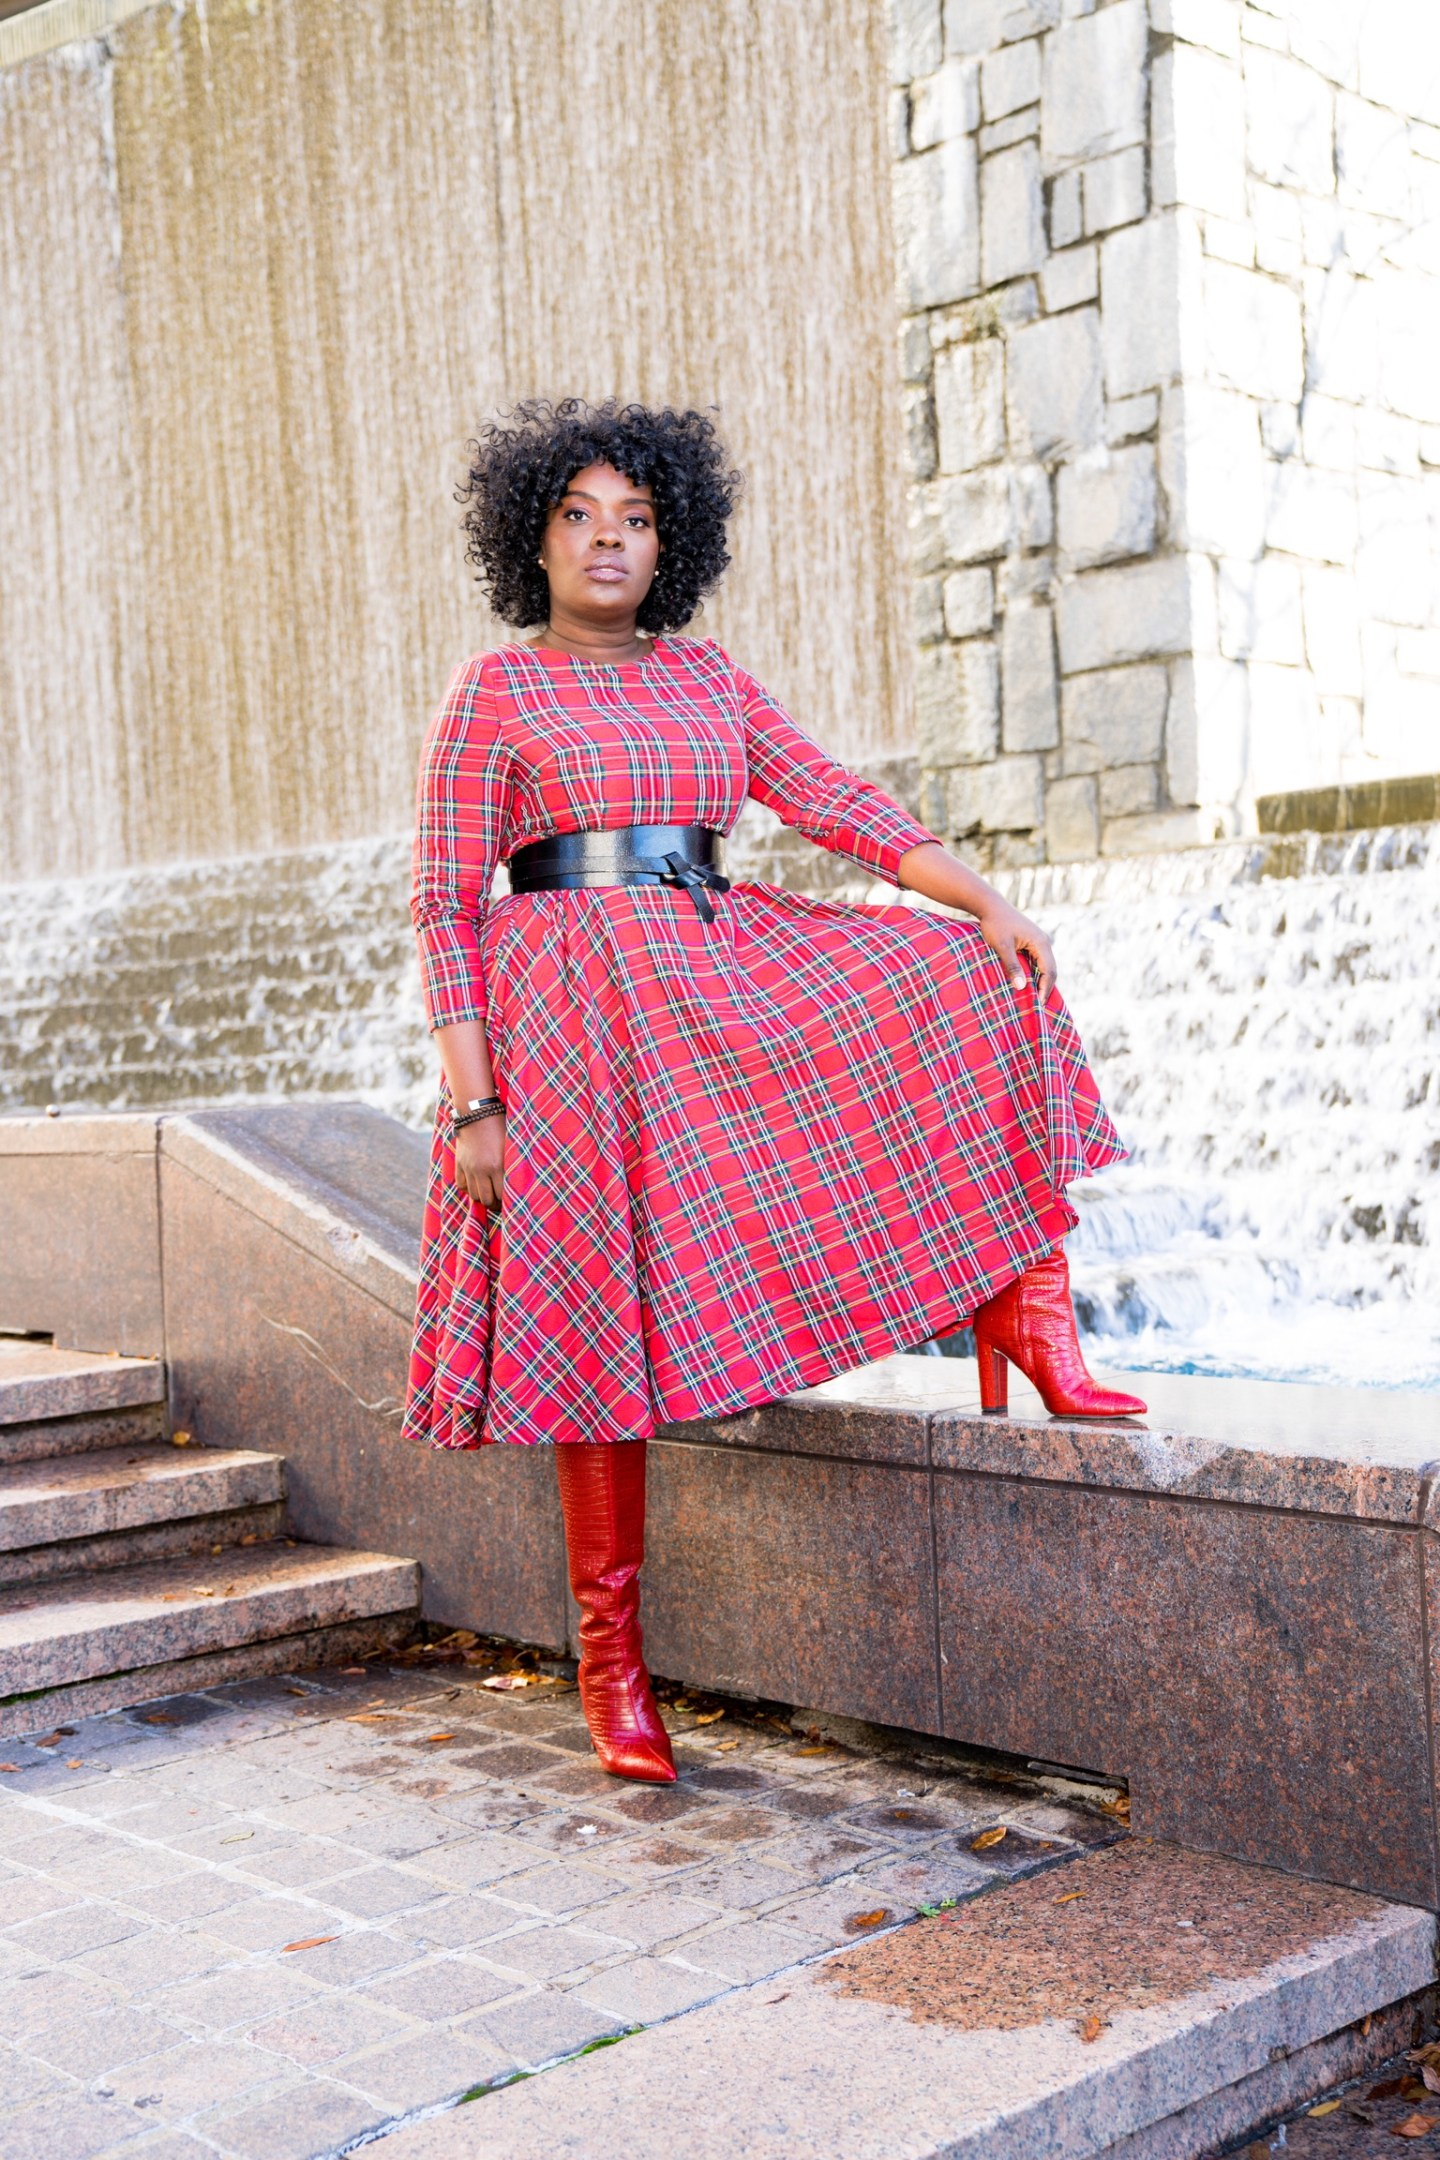 Black woman wearing thrift tartan dress by water fountain.